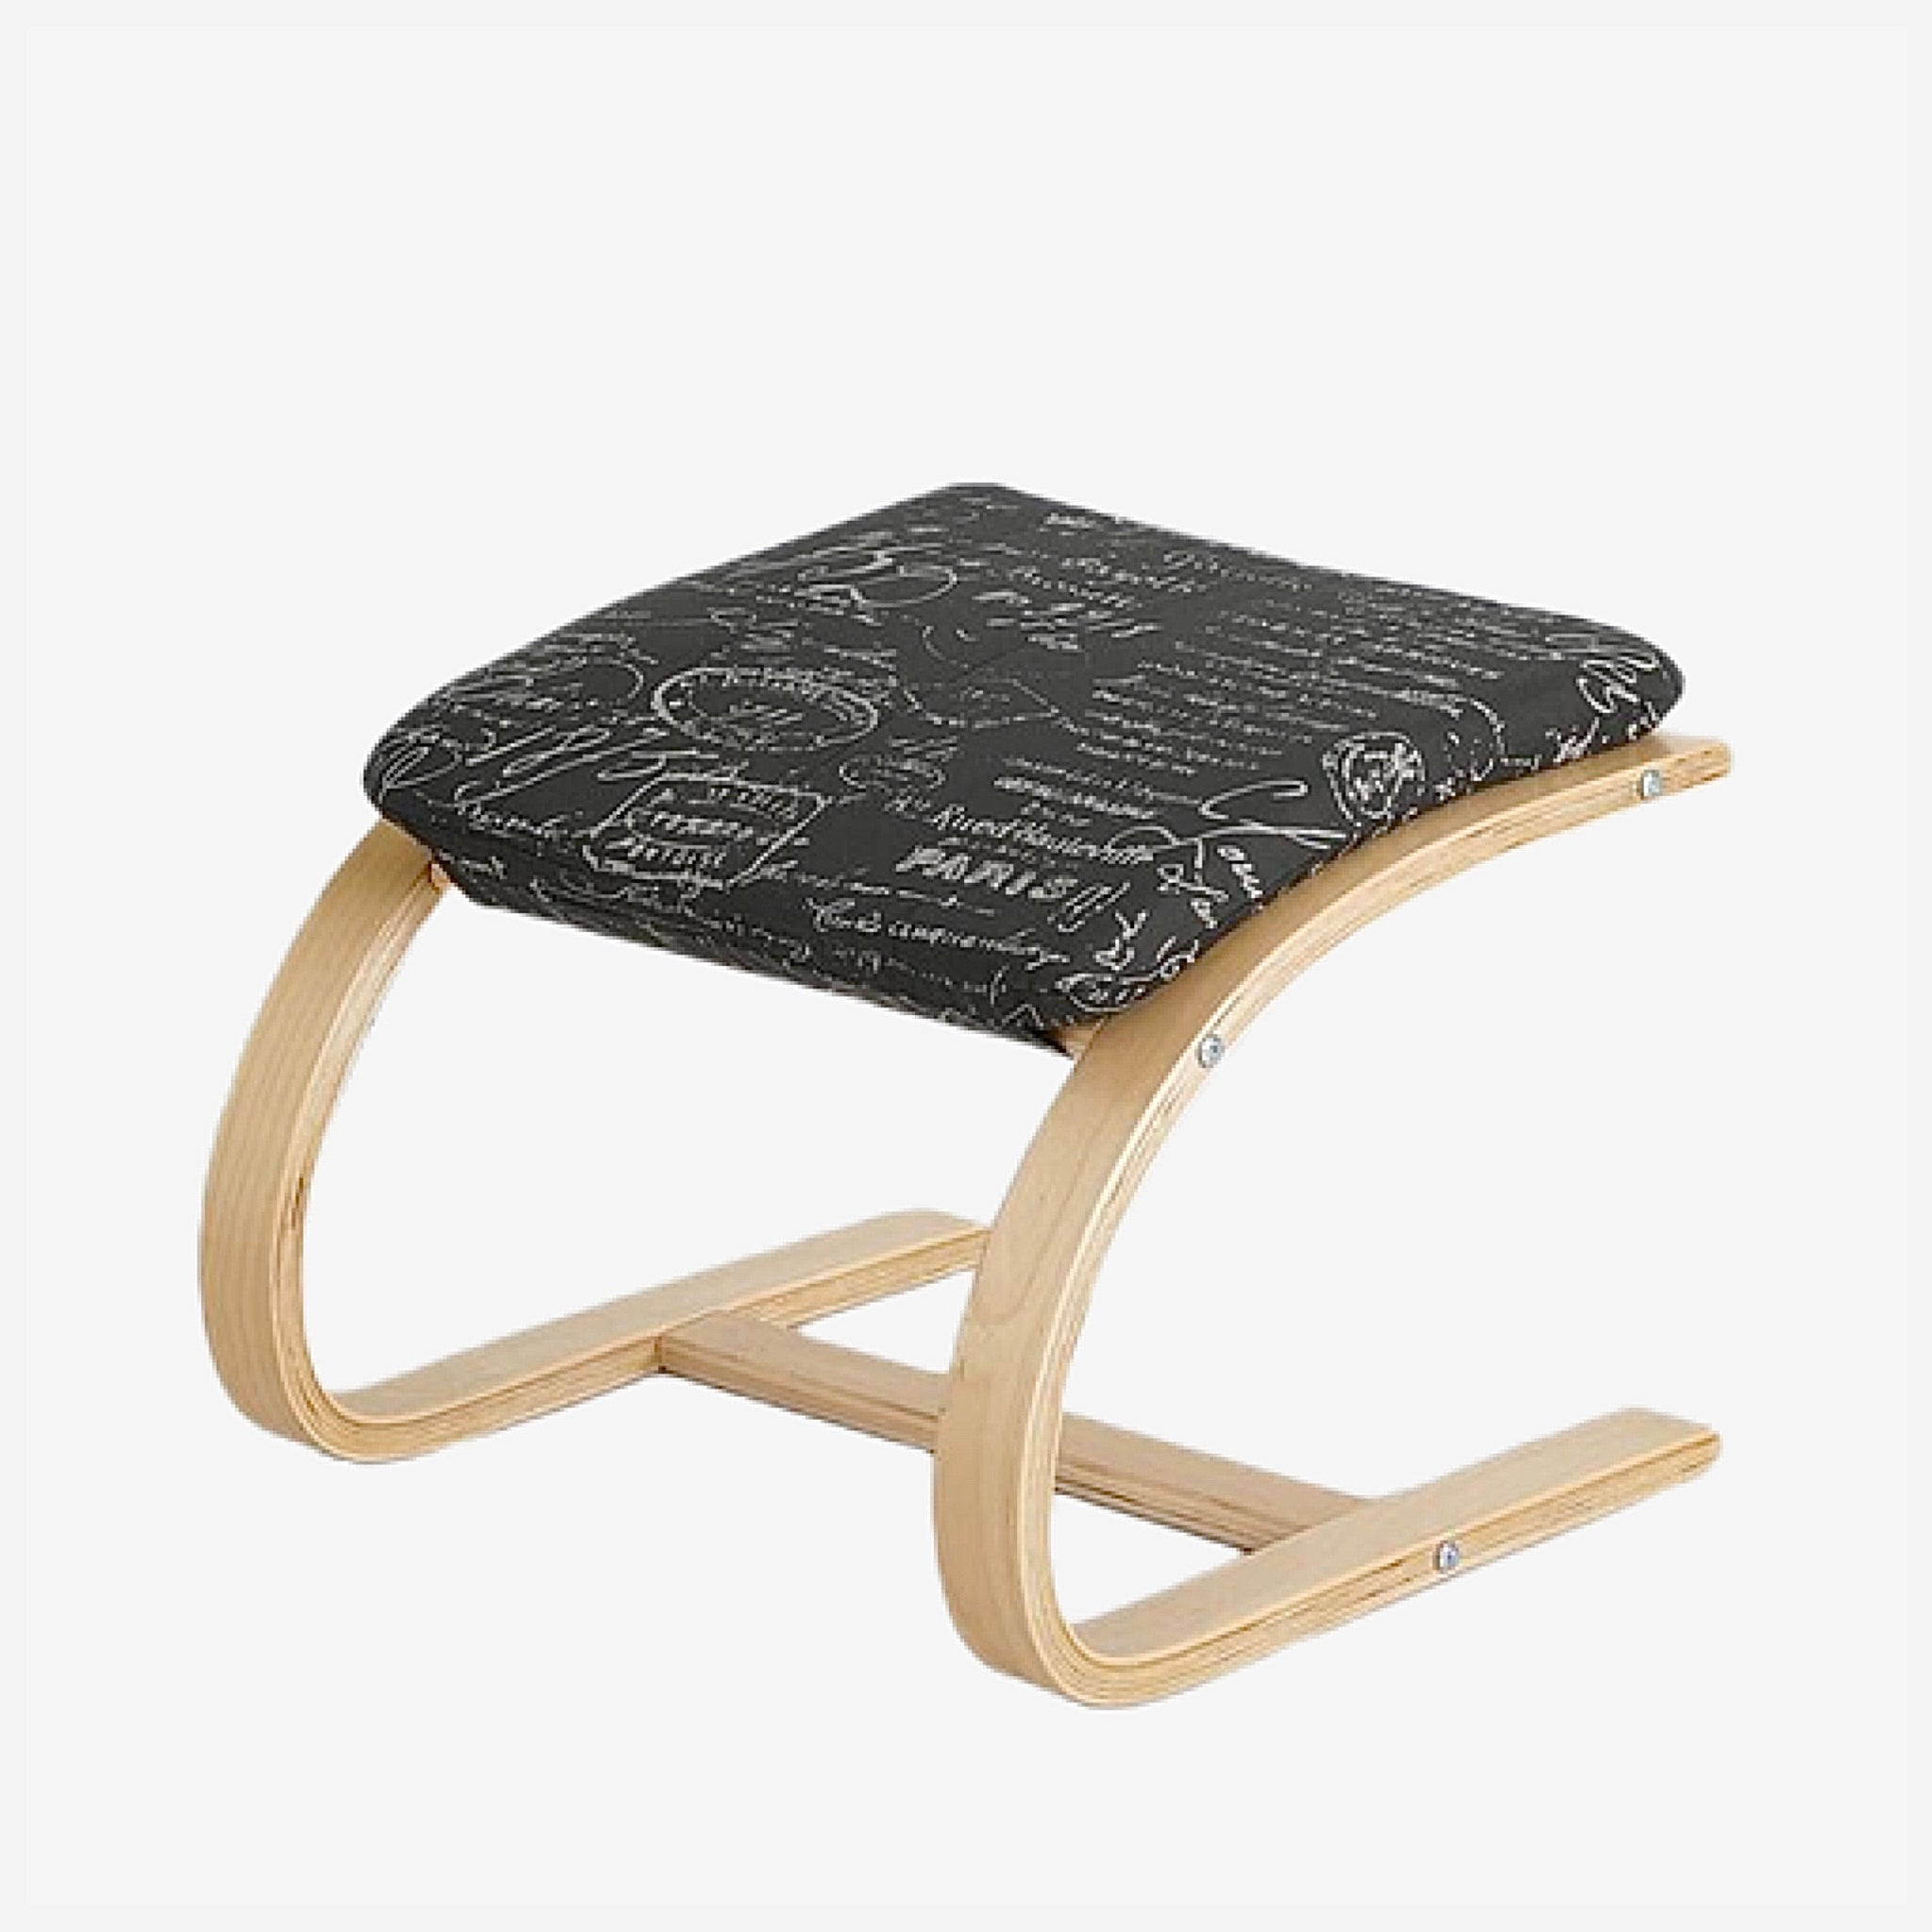 Contemporary Wooden Footstool Comfortable Fabric Cushion Ottoman Chair Small Plywood Wood Footrest Stools Furniture Trendy